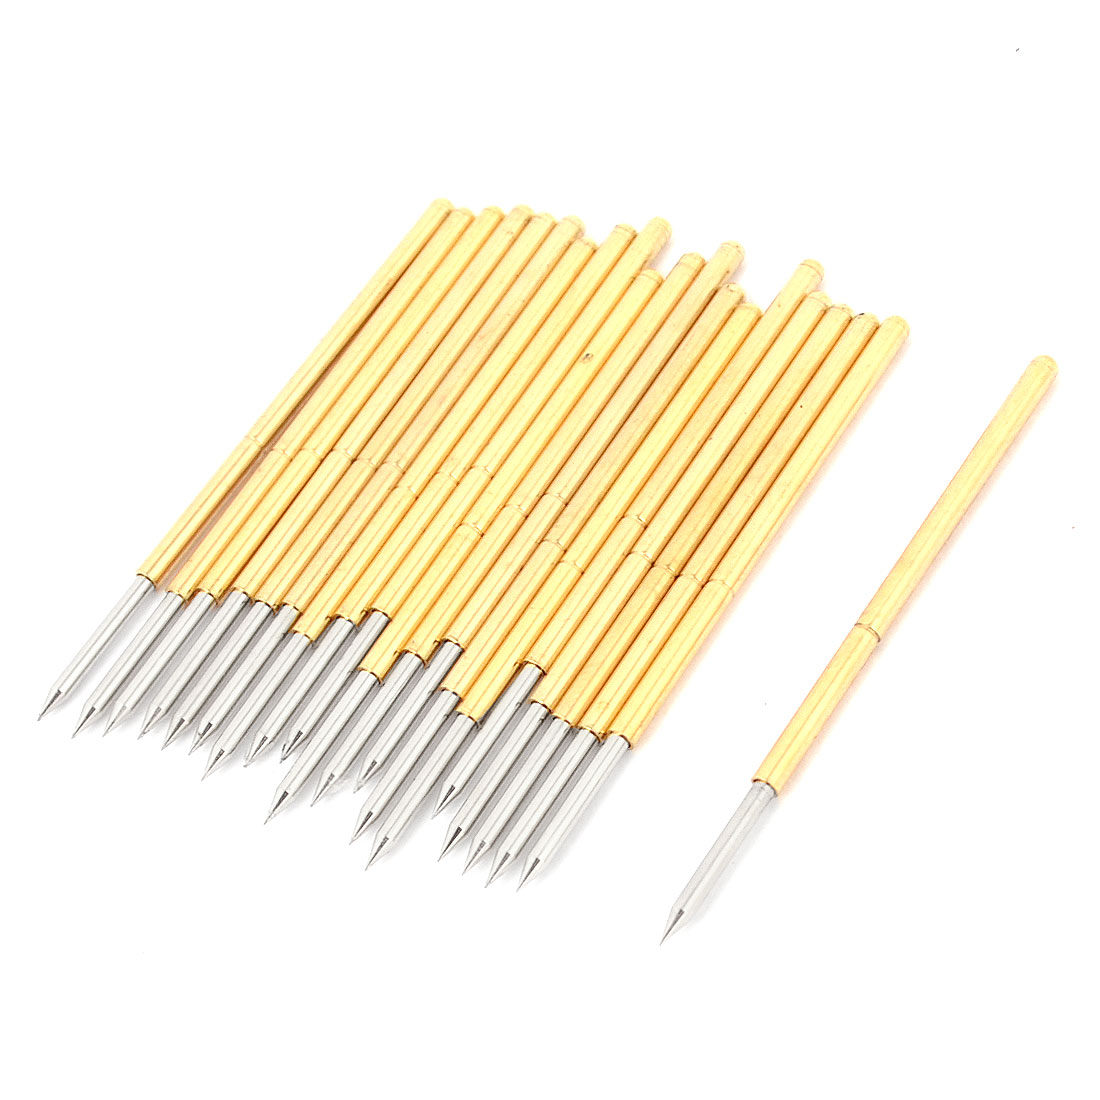 20 Pcs P100-B1 1.5mm Concave Round Tip 33.3mm Length Test Probes Pin